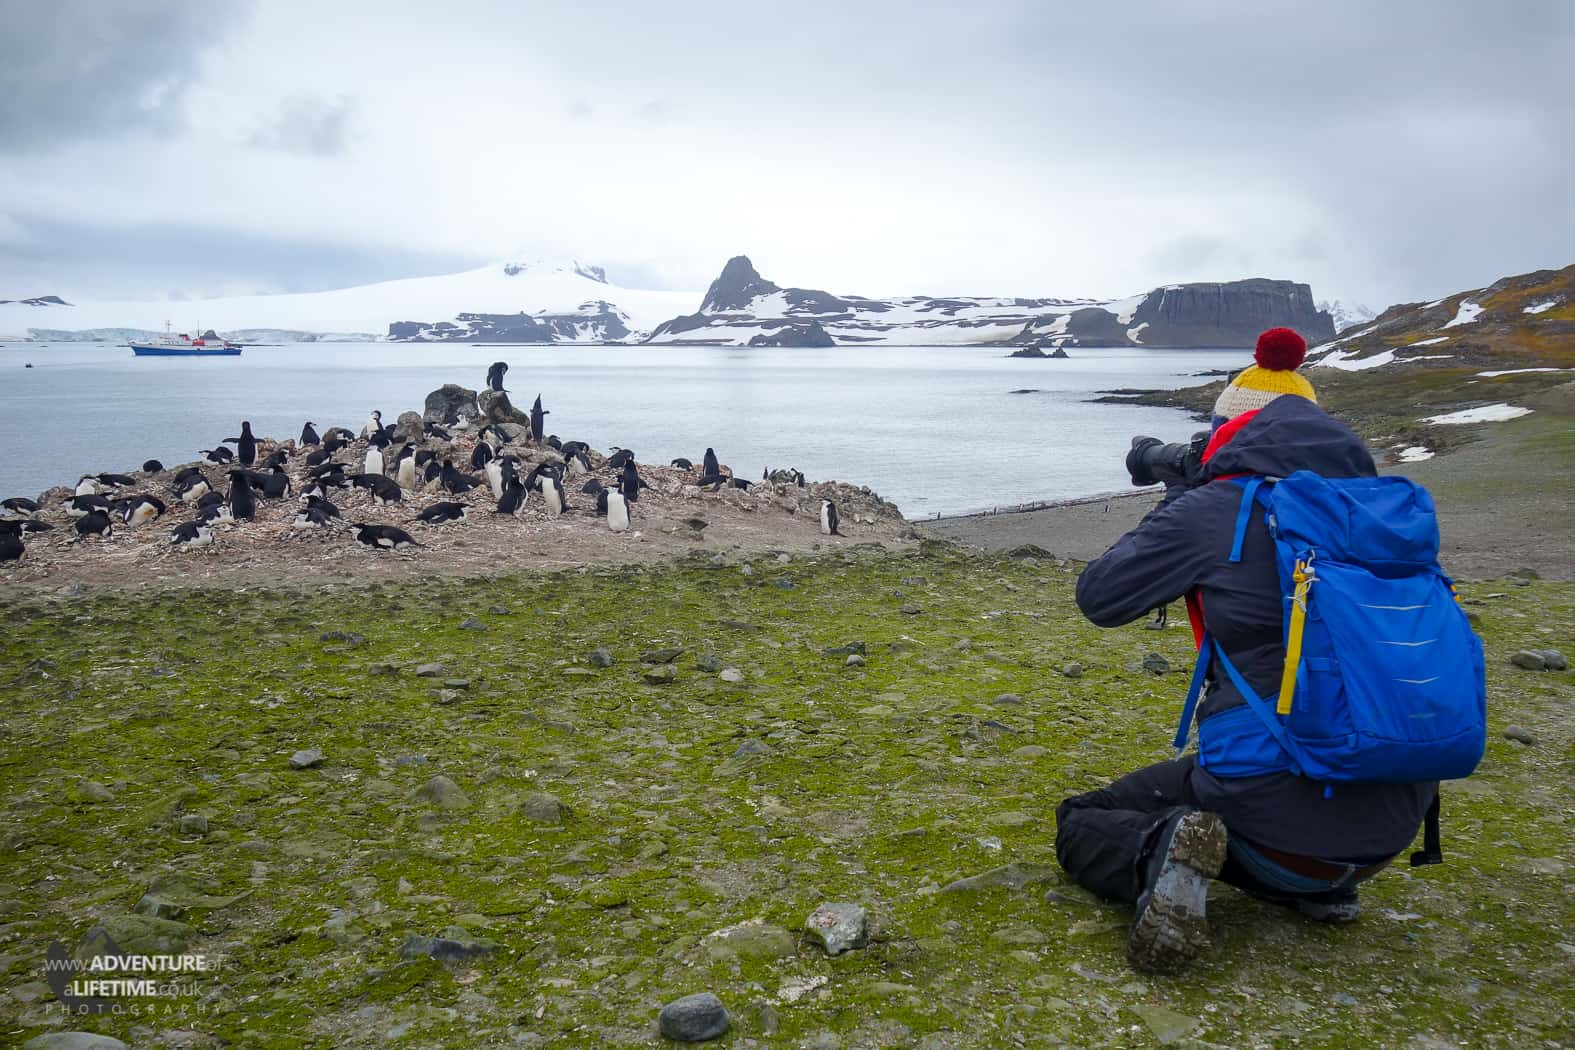 Chinstrap Penguin Rockery on Barrientos Island, Antarctica